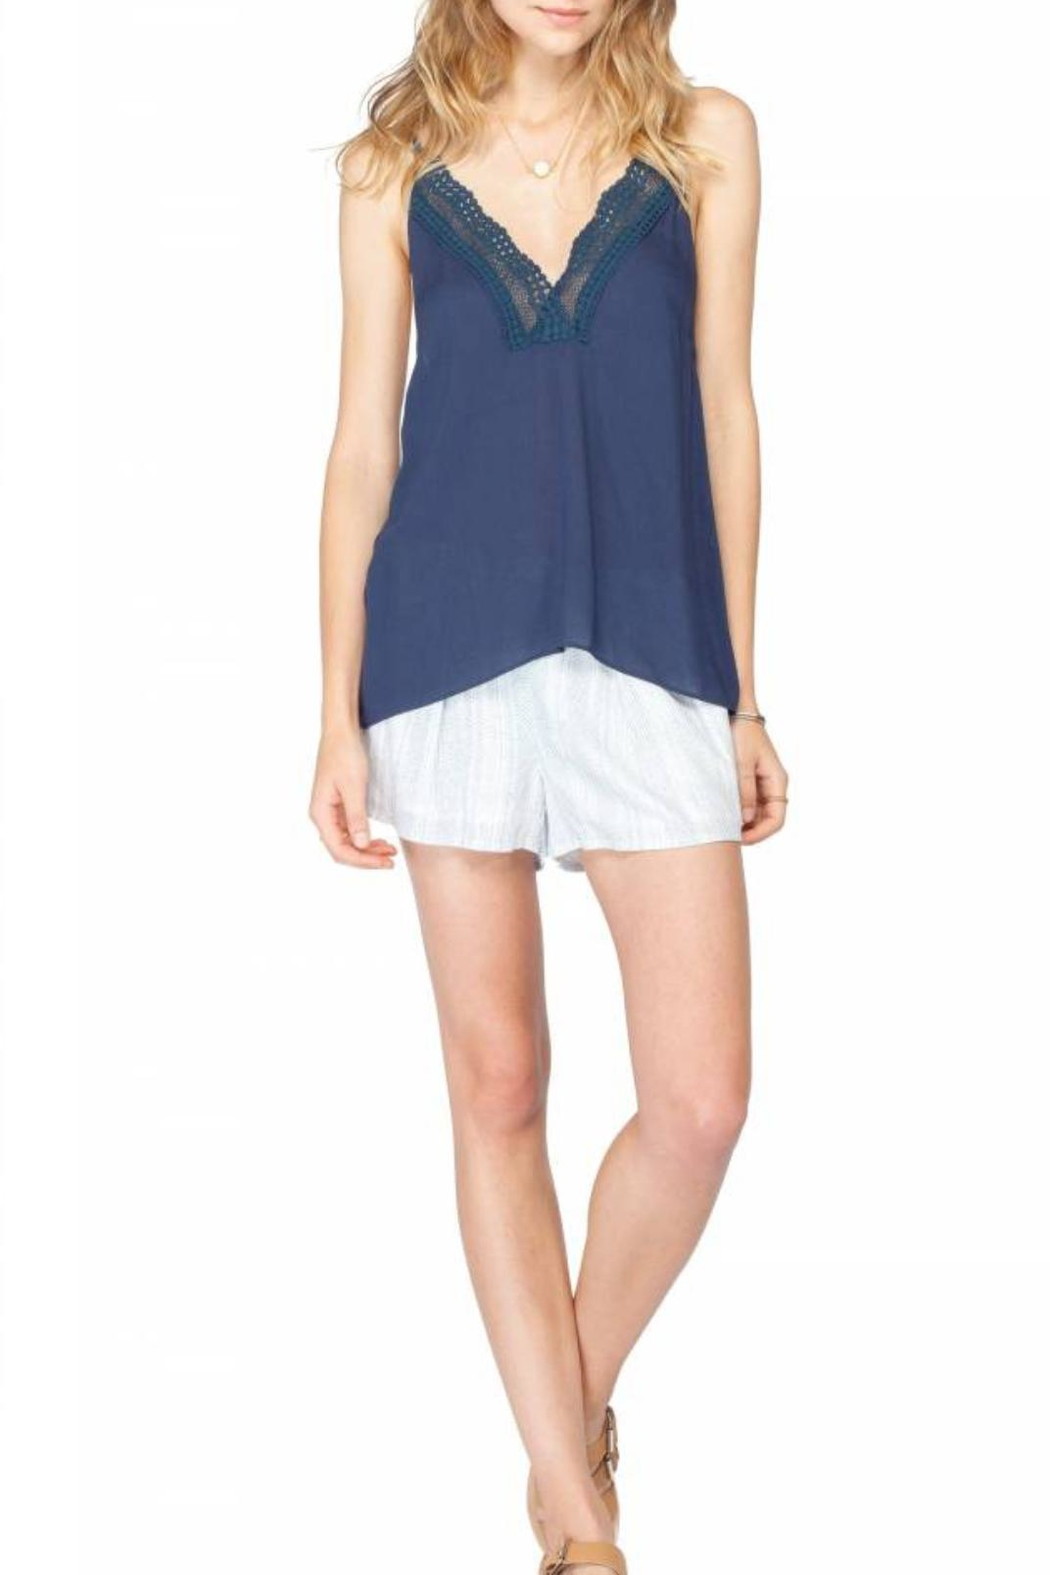 Gentle Fawn Lace Tank Top - Main Image